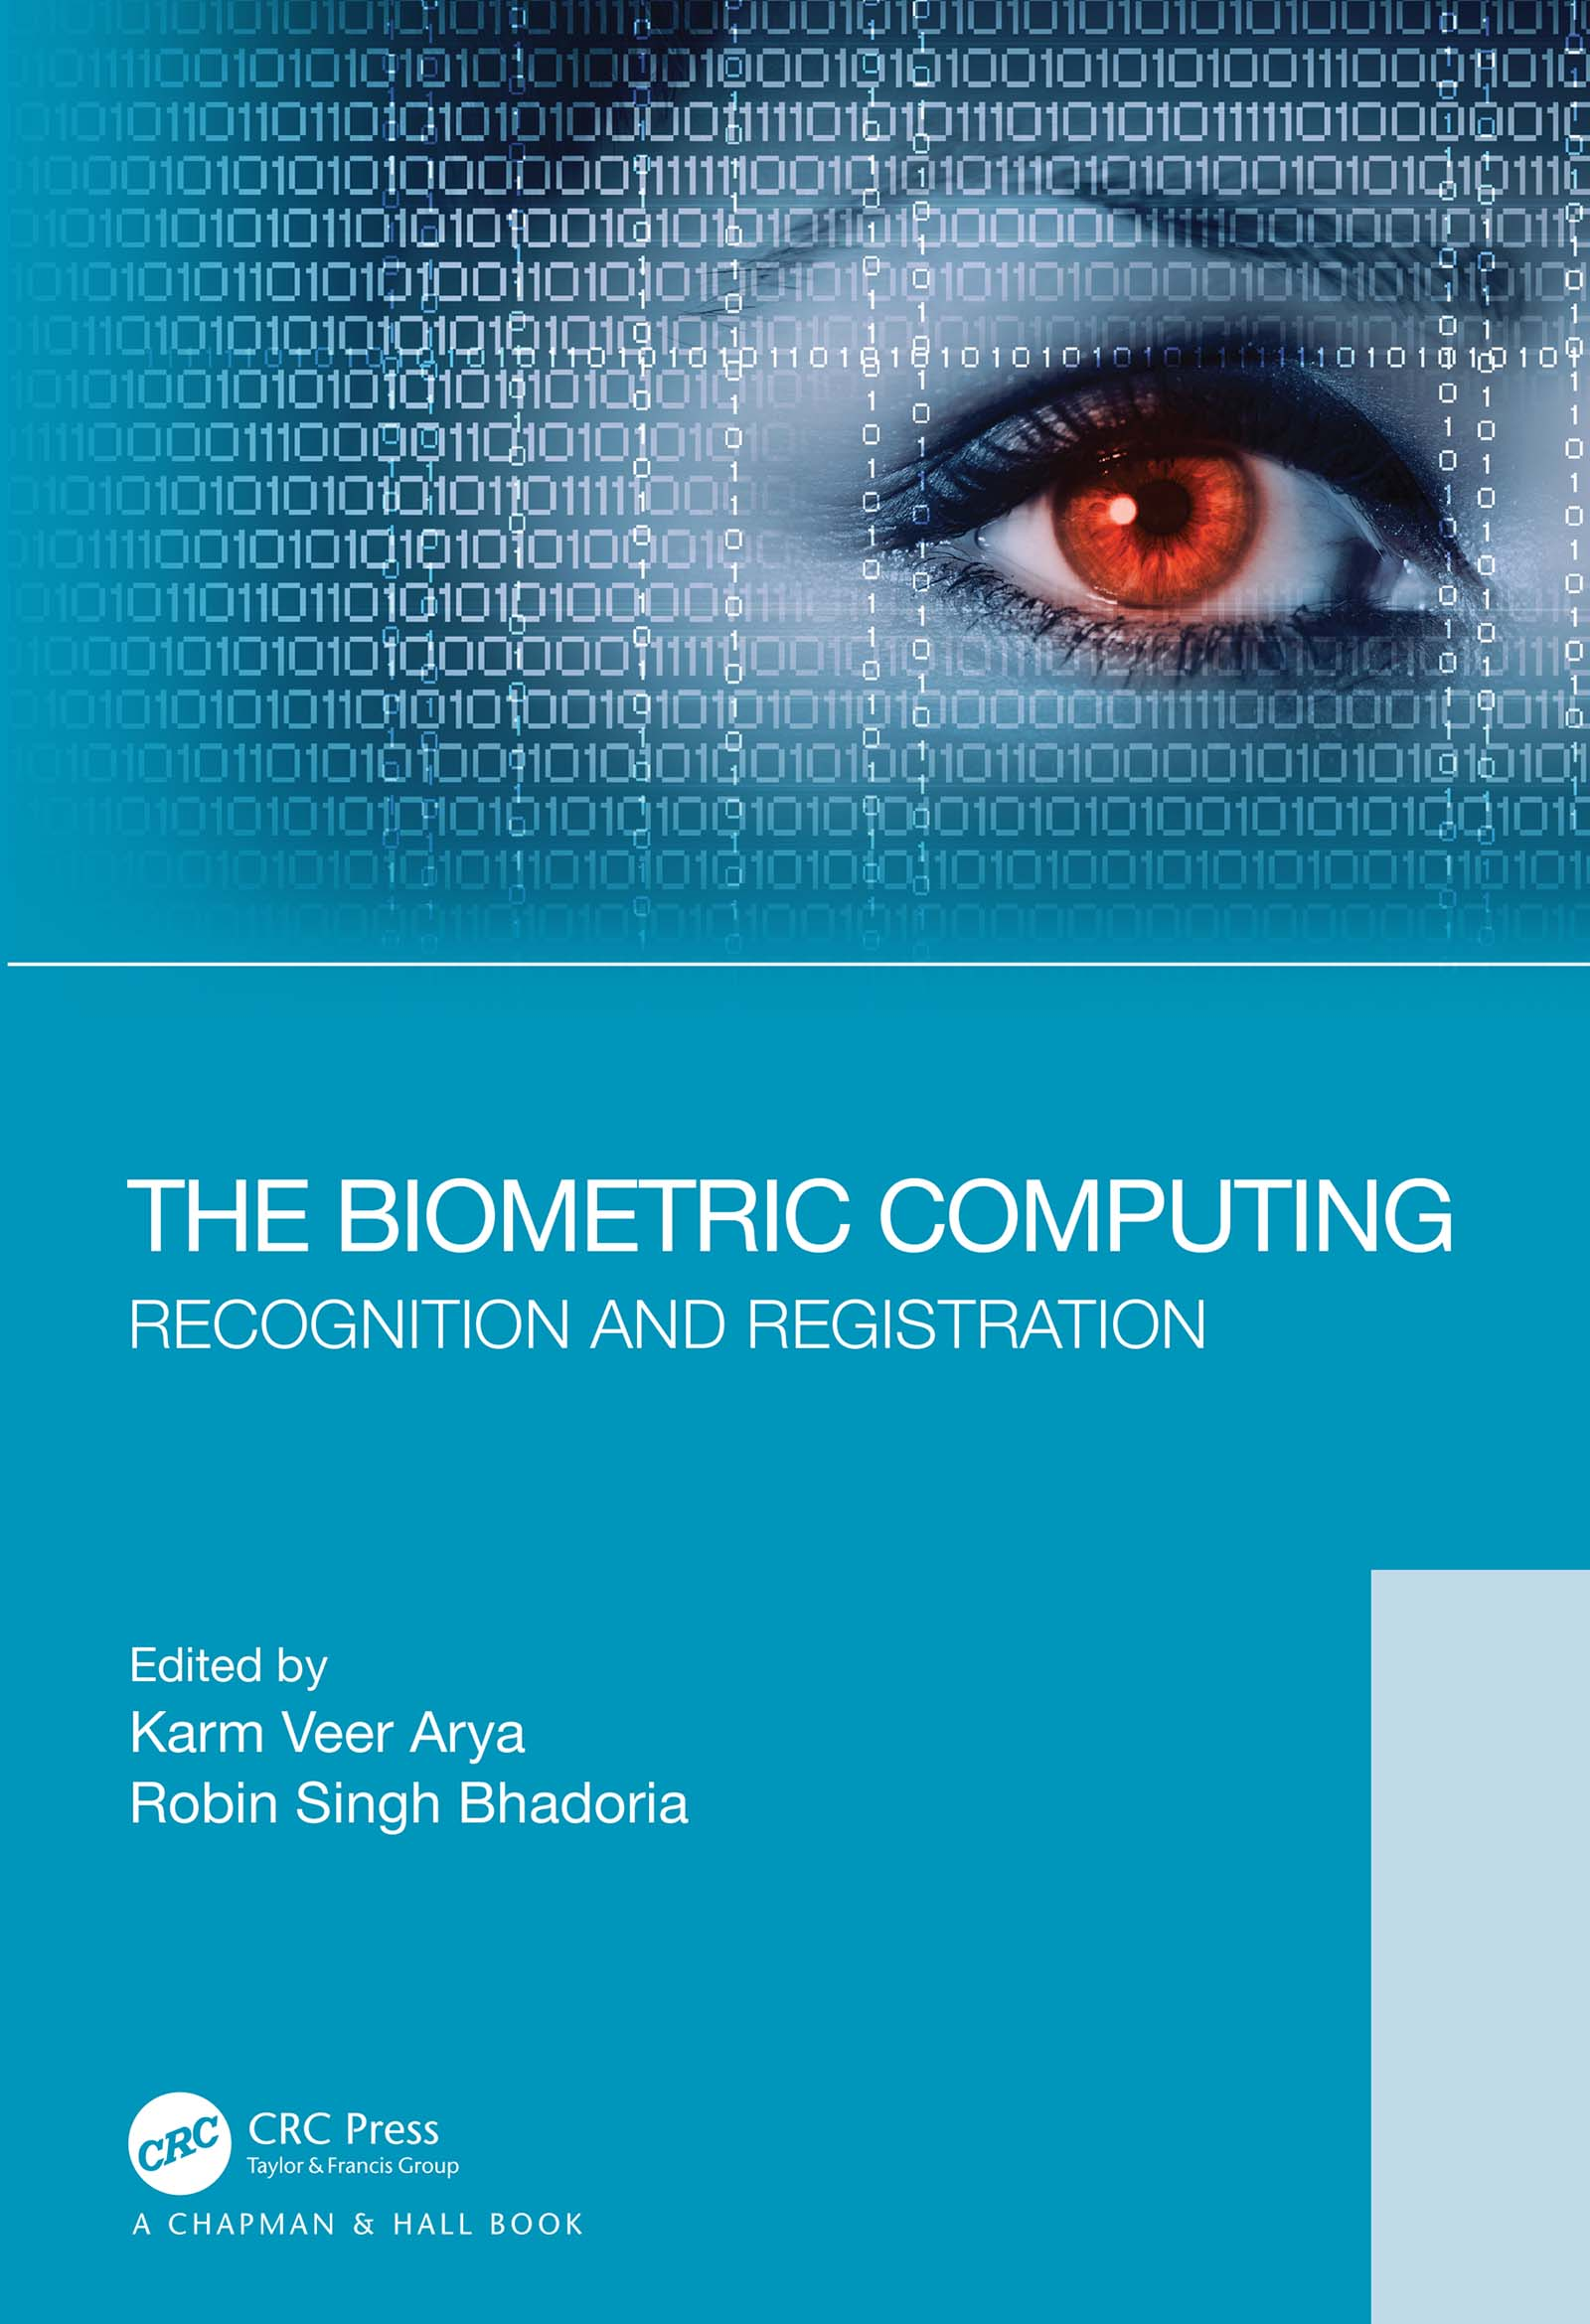 The Biometric Computing: Recognition and Registration book cover